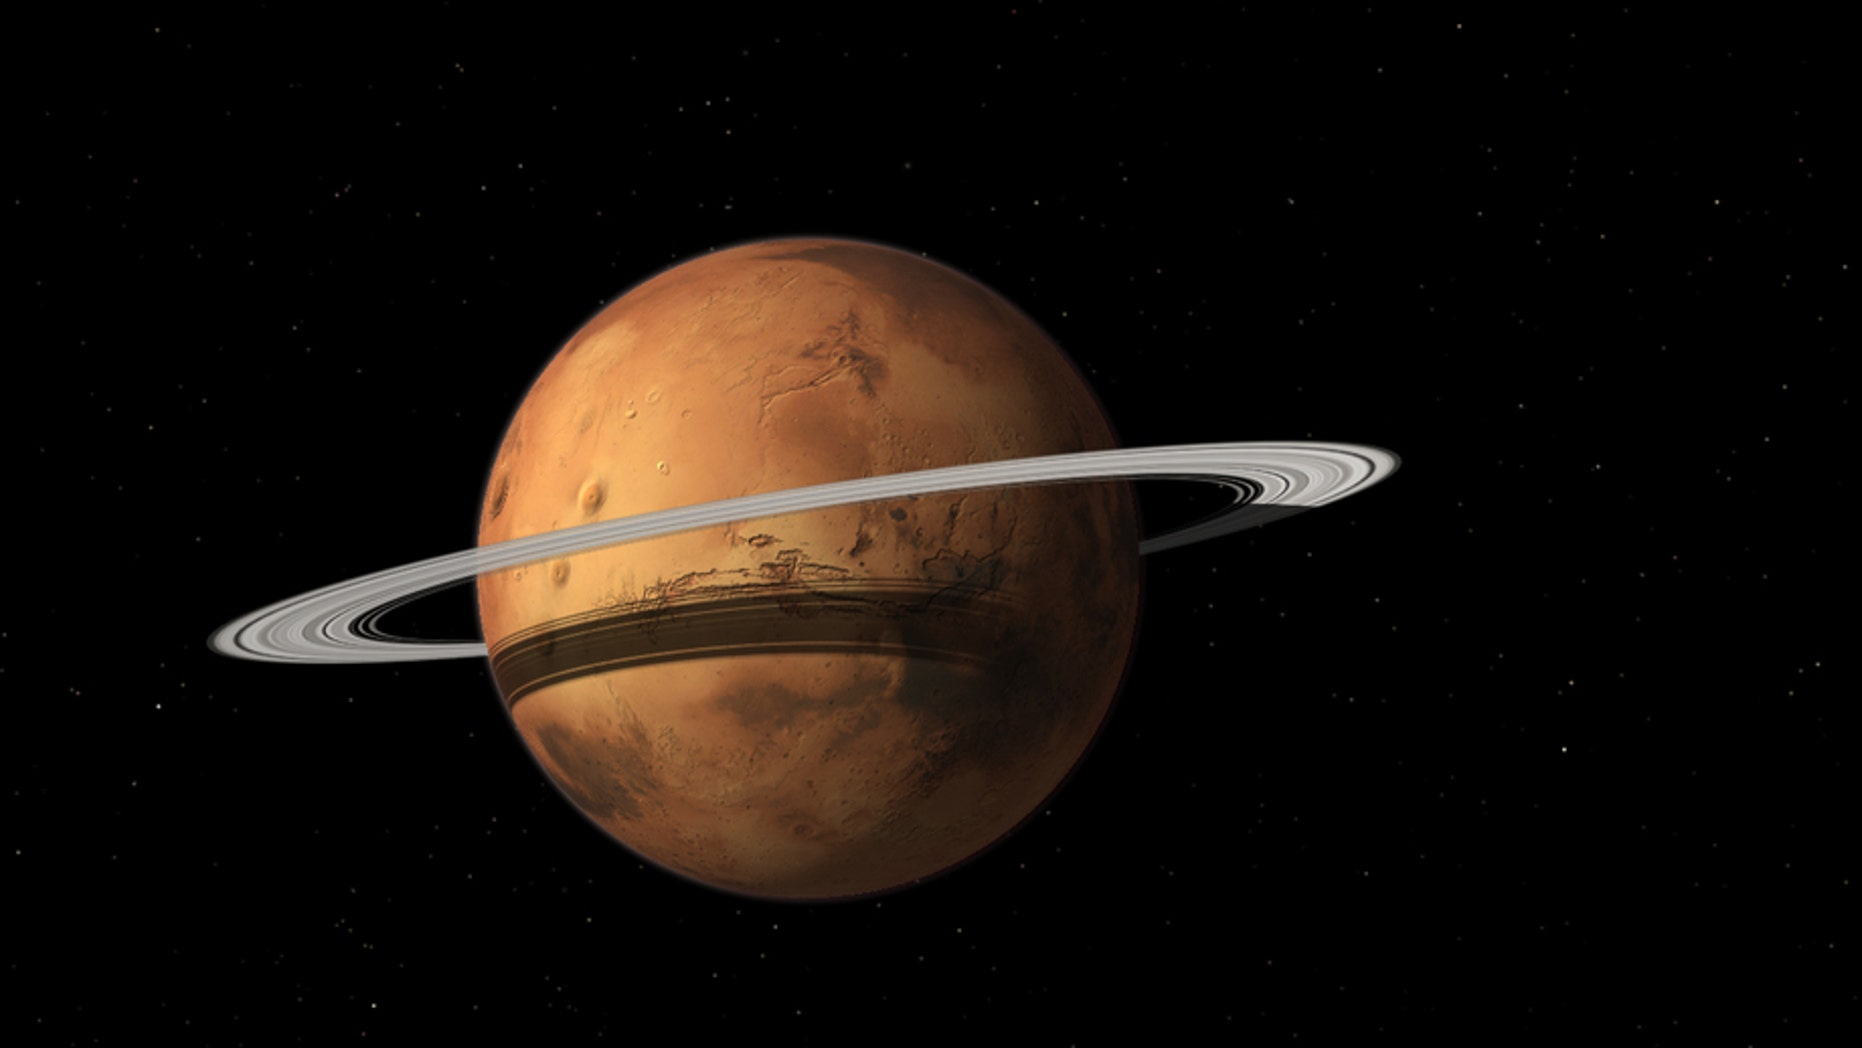 Re-add with new caption: Researchers think Mars' moon Phobos may someday reform into a ring around the rocky world. New work suggests that rocky planets with rings may be more common than previously thought, having been mistaken for another type of planet.